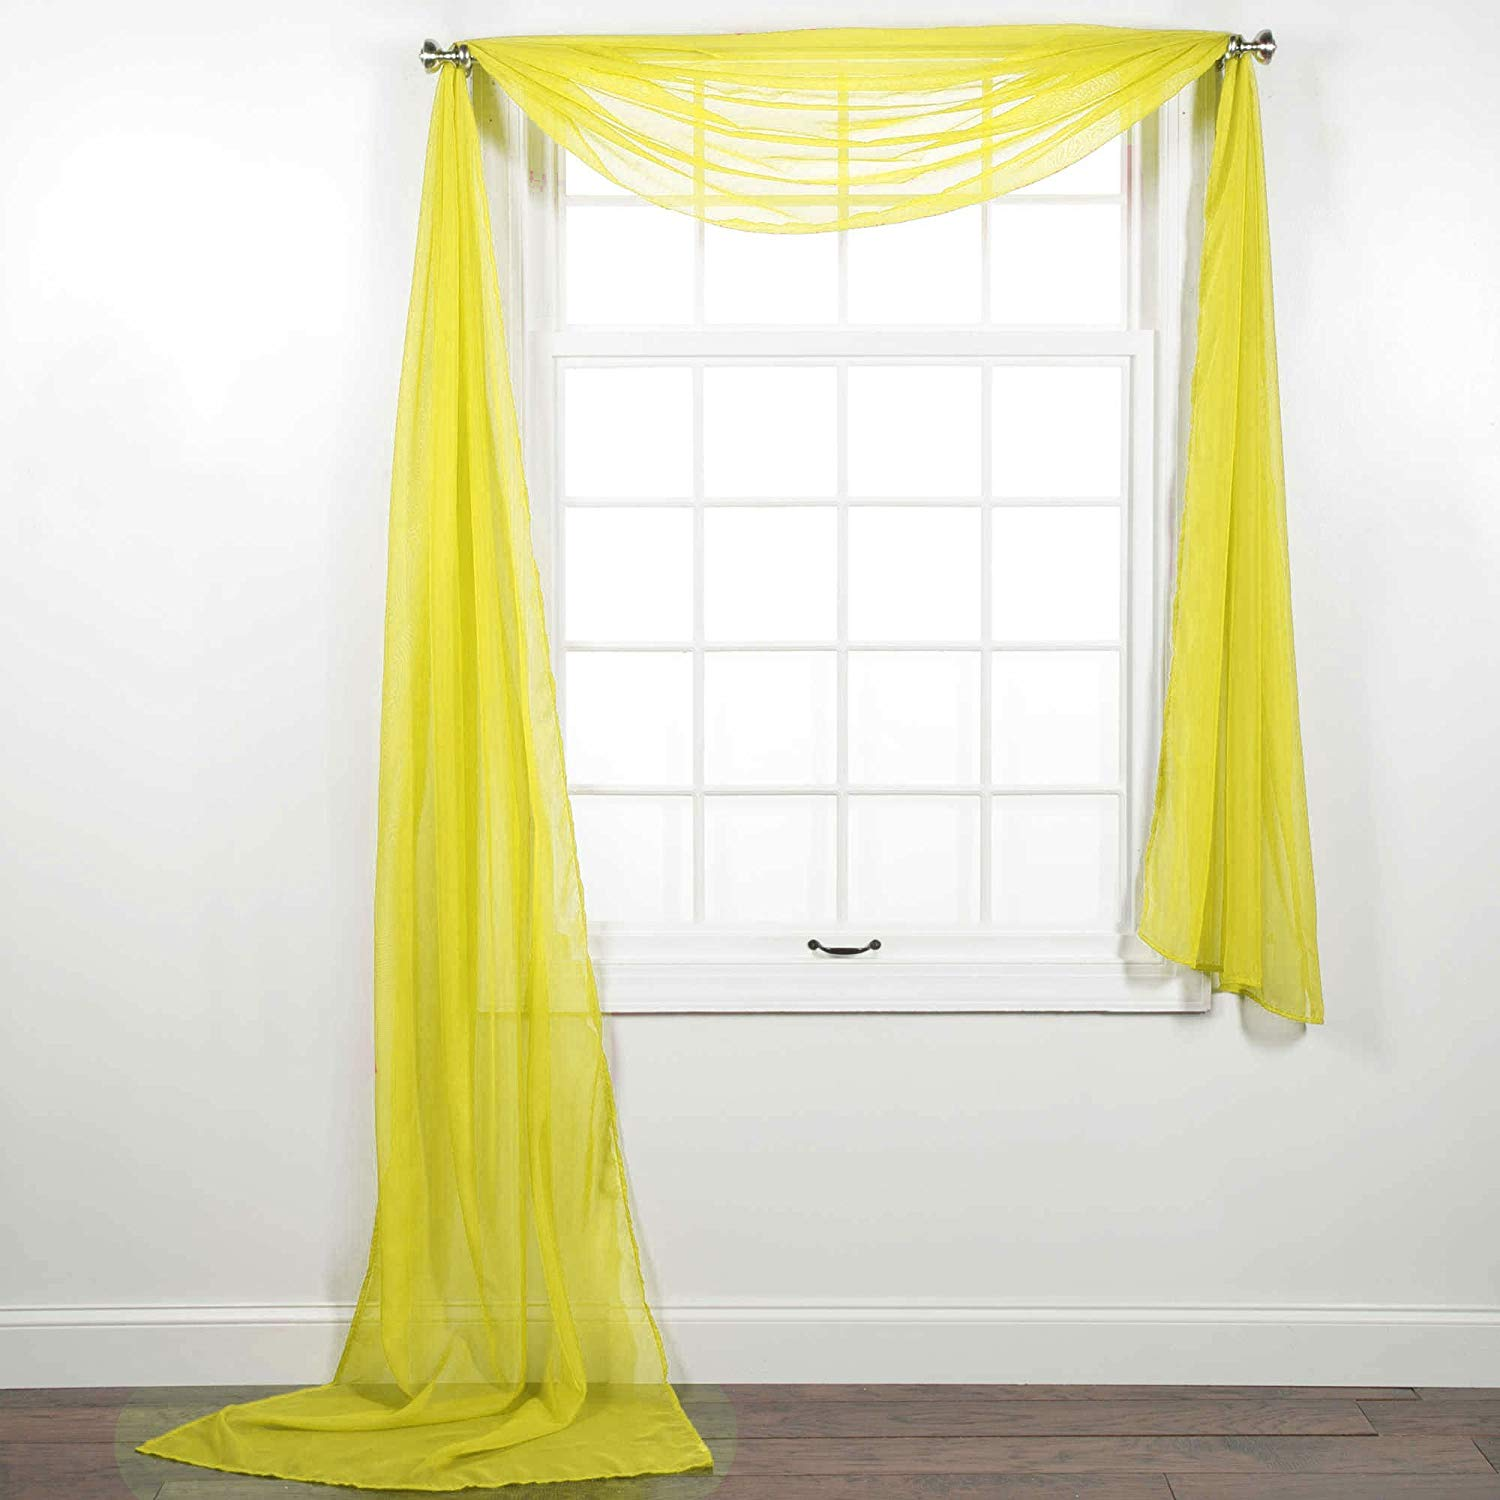 1pc Solid Sheer Scarf Valance Topper Curtain Drape In 216 For Wedding Quinceniera Gender Reveal Baby Shower Birthday Party Decor In Multiple Colors Yellow Walmart Com Walmart Com